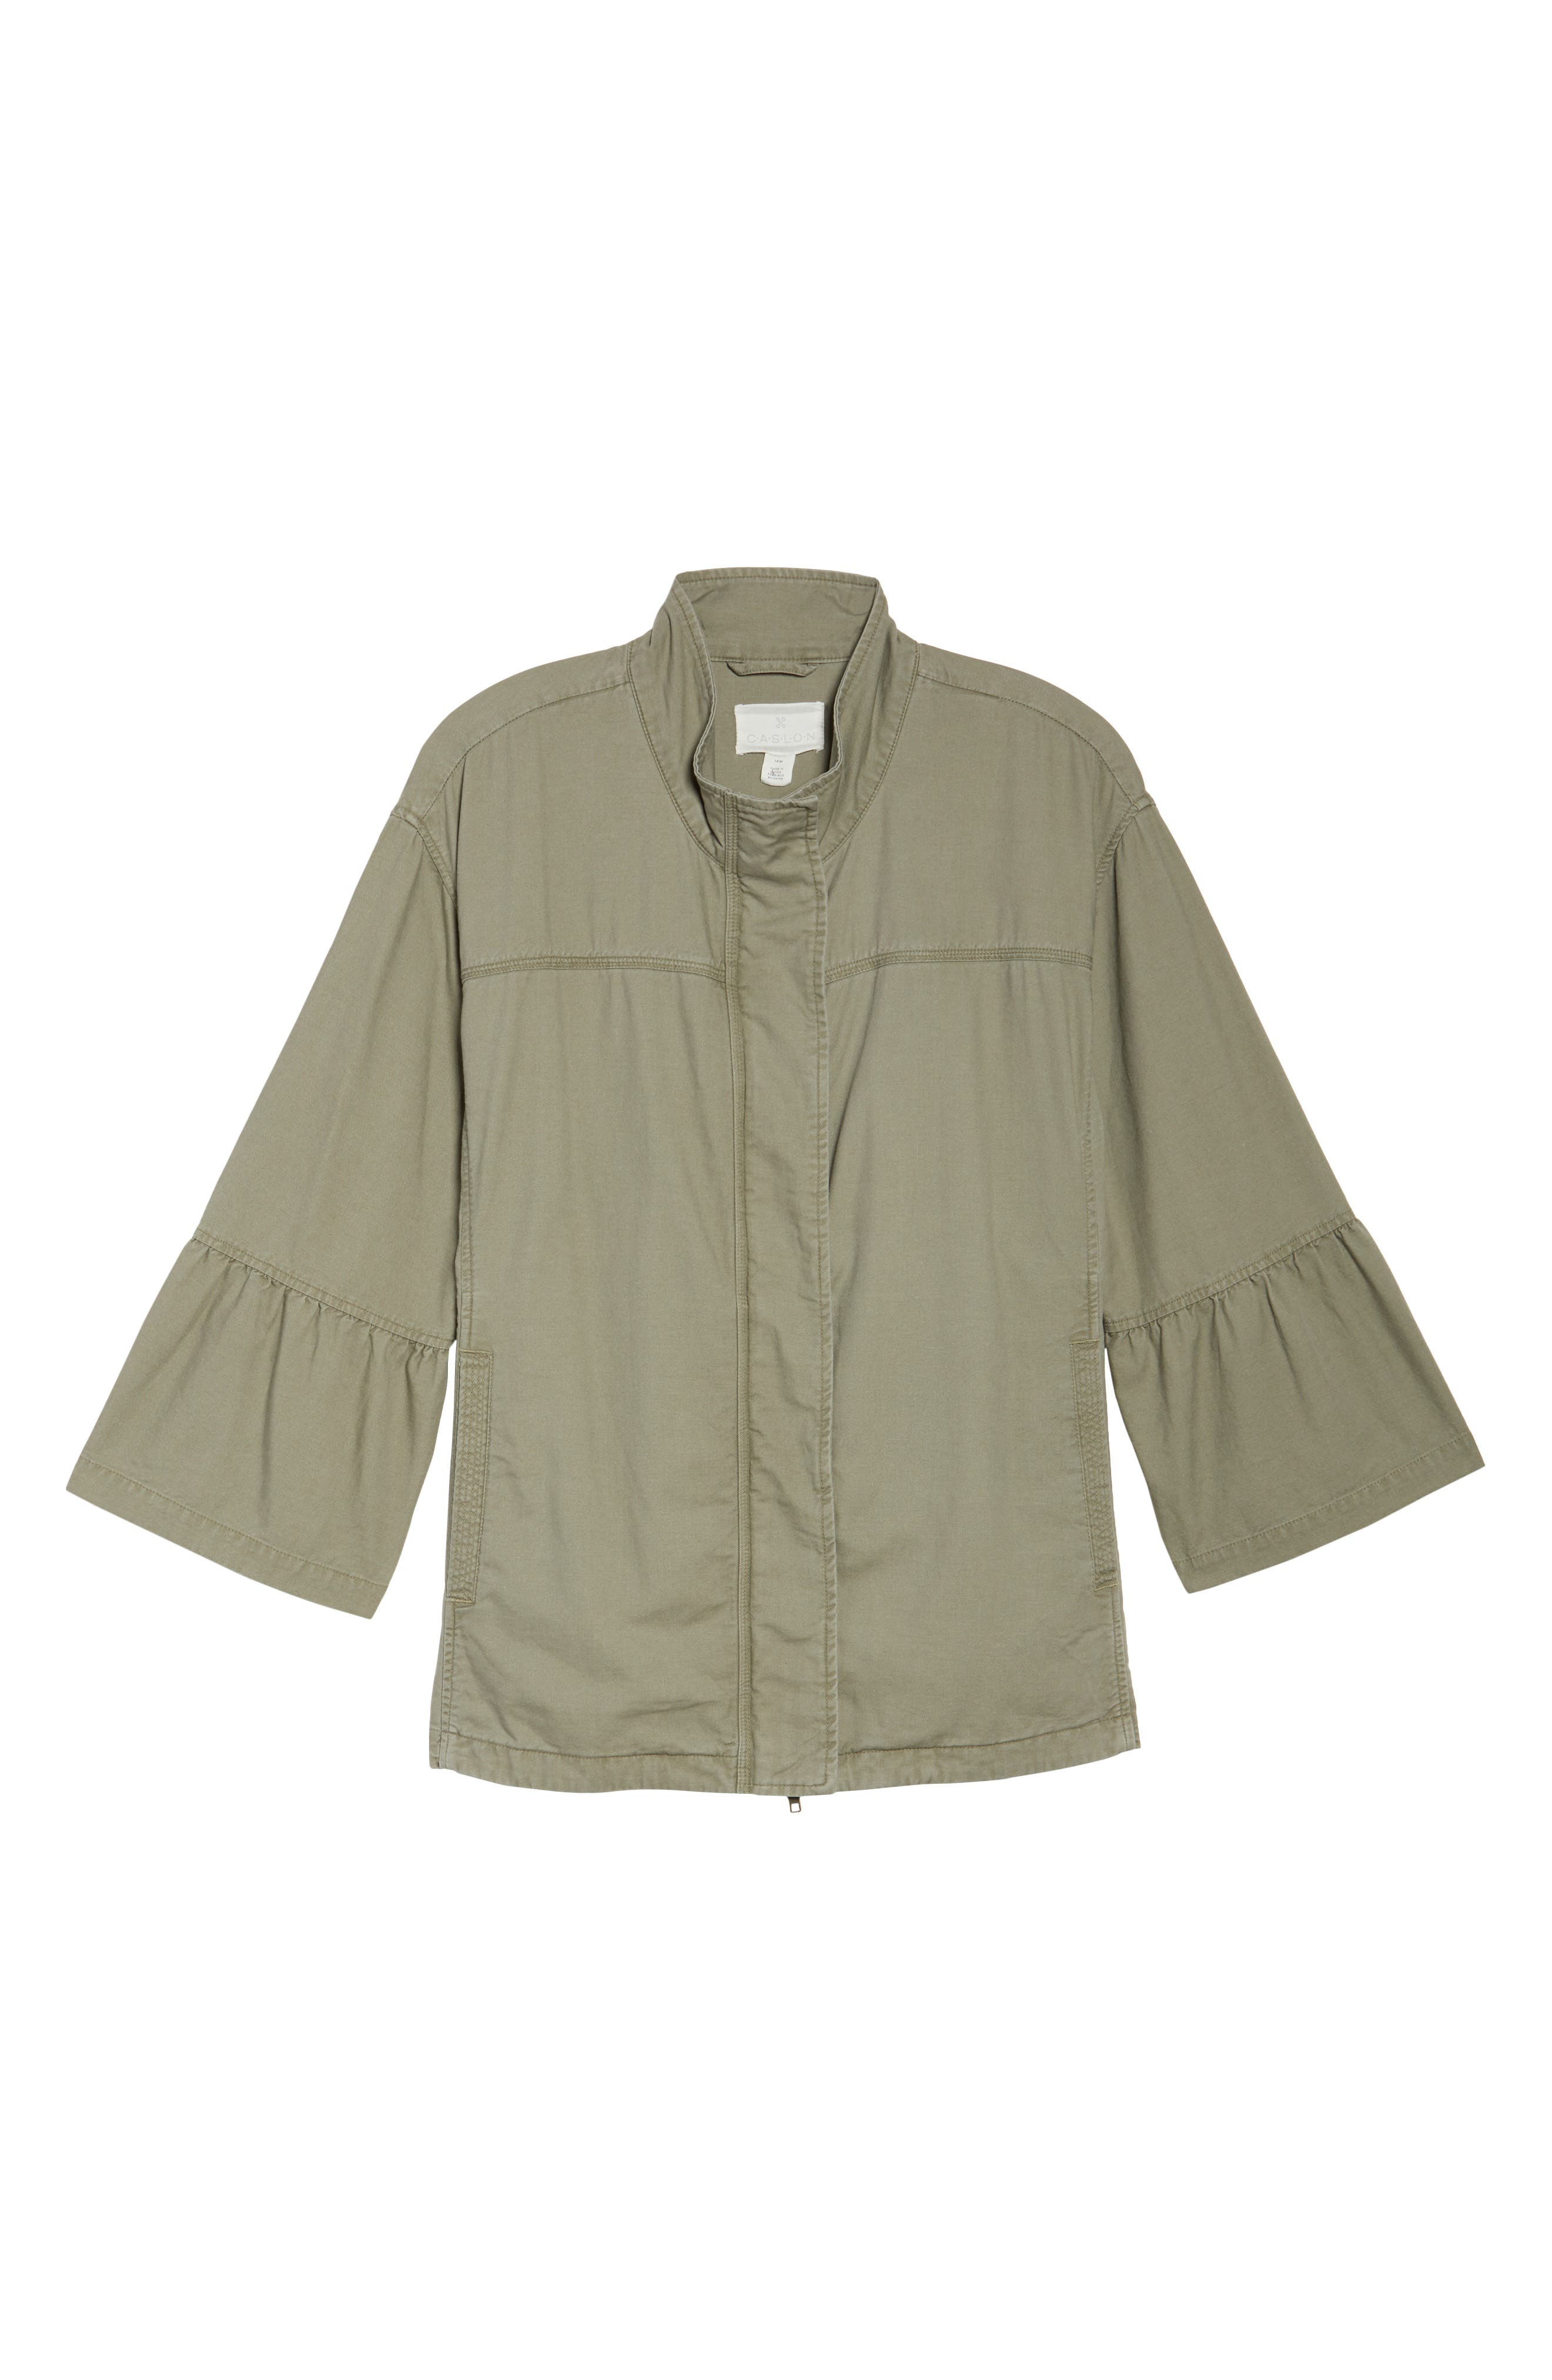 Bell Sleeve Utility Jacket,                             Alternate thumbnail 5, color,                             315